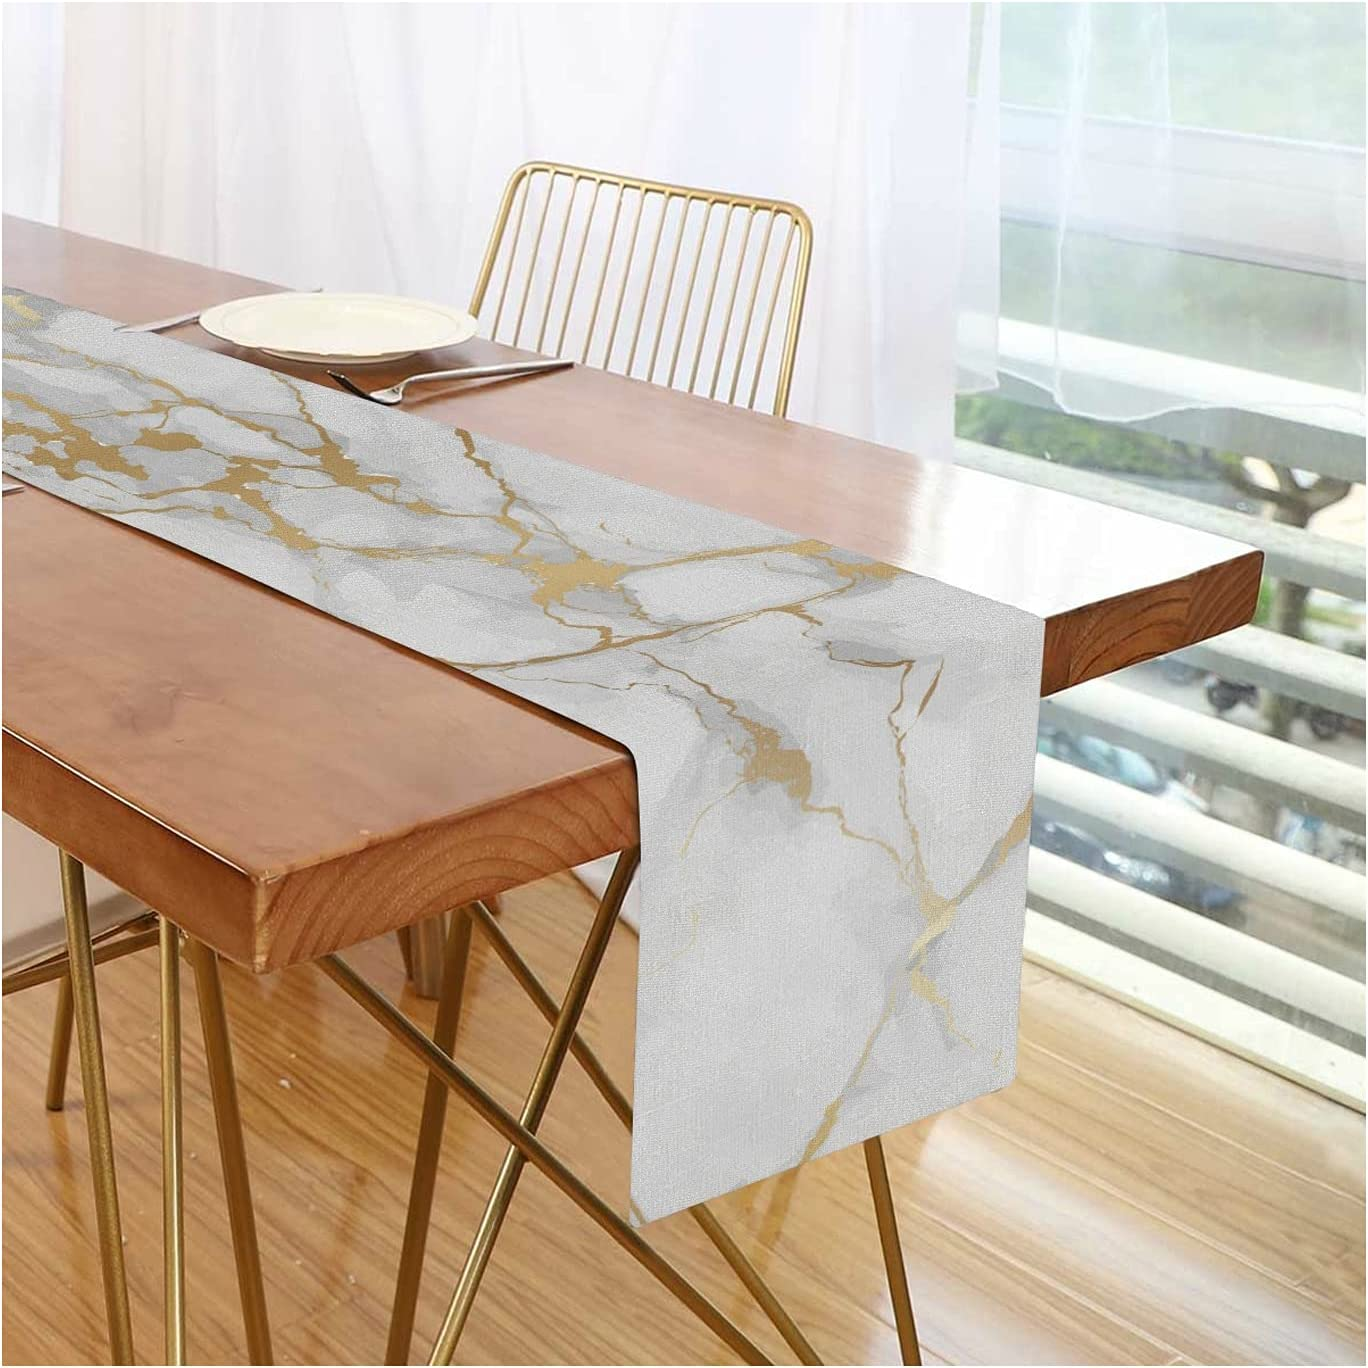 Velivn Gold Marble Pattern Table Runner 70 inches Long, Nature Flax Non-Slip Rectangle Table Setting Decor for Farmhouse Dinner, Holiday Parties, Wedding, Events